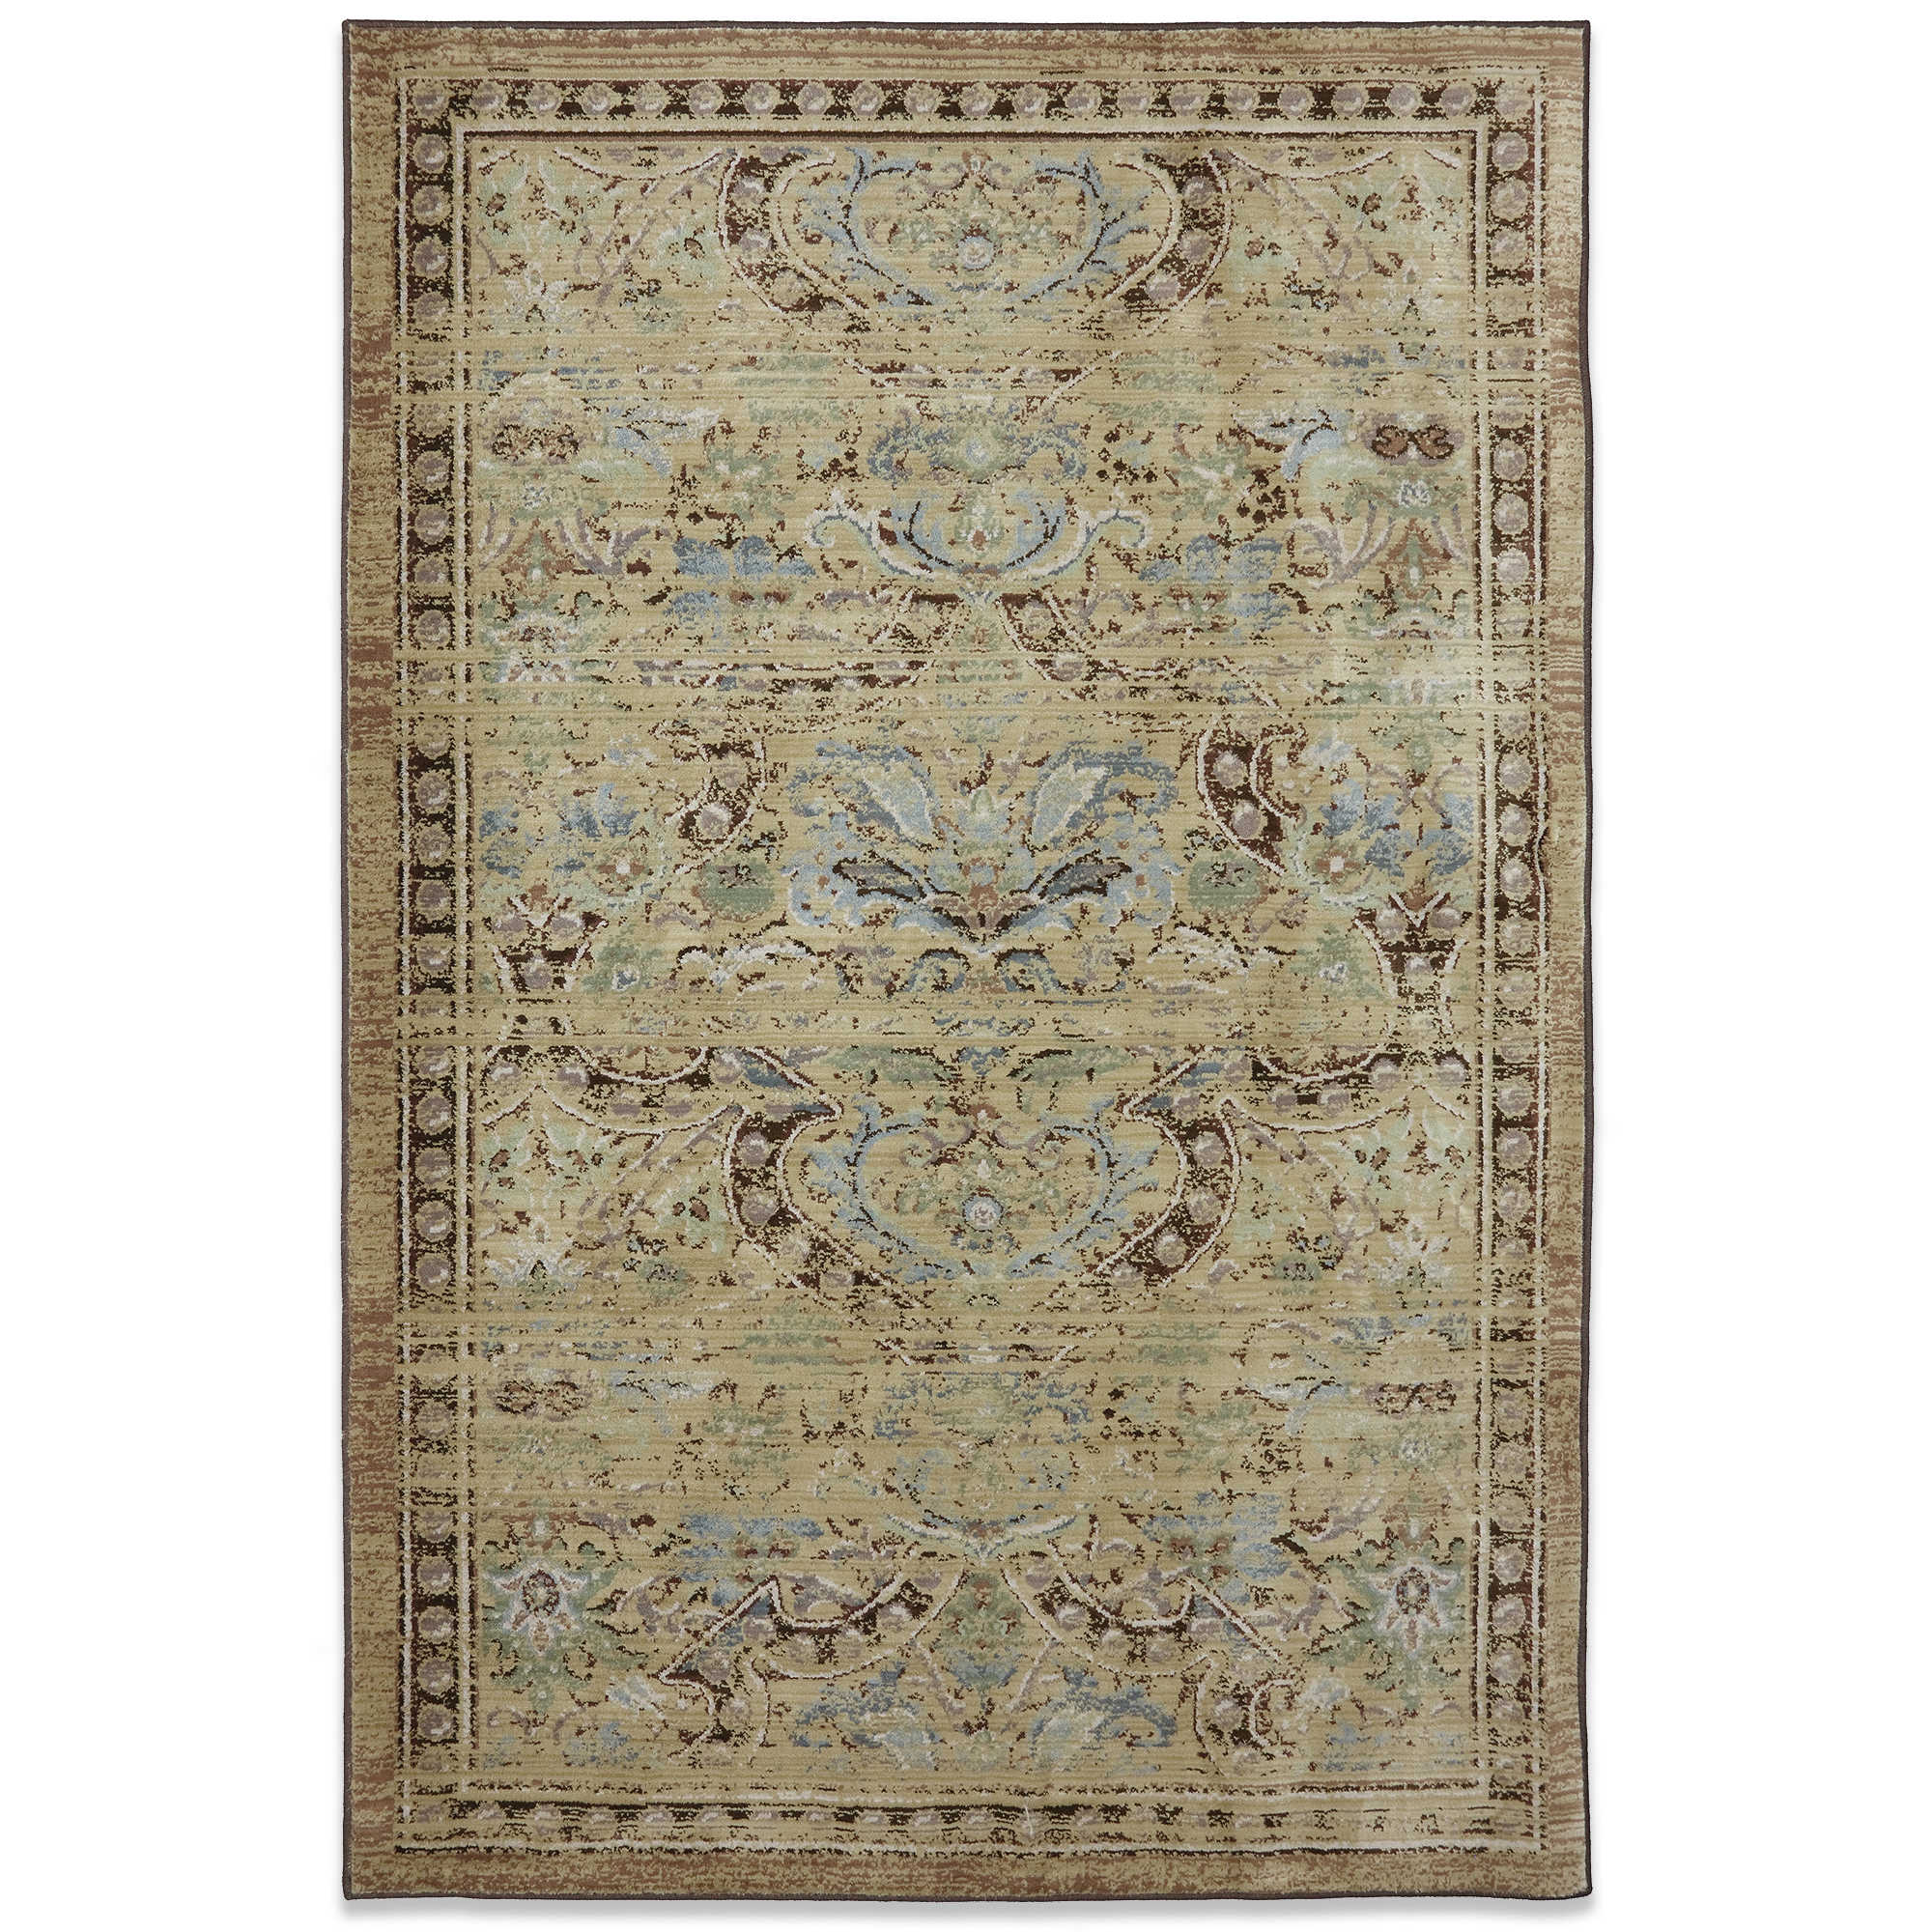 Bed Bath And Beyond Area Rugs Roselawnlutheran Earth Tone: Mohawk Serenity Edison Avenue Cashmere Rug